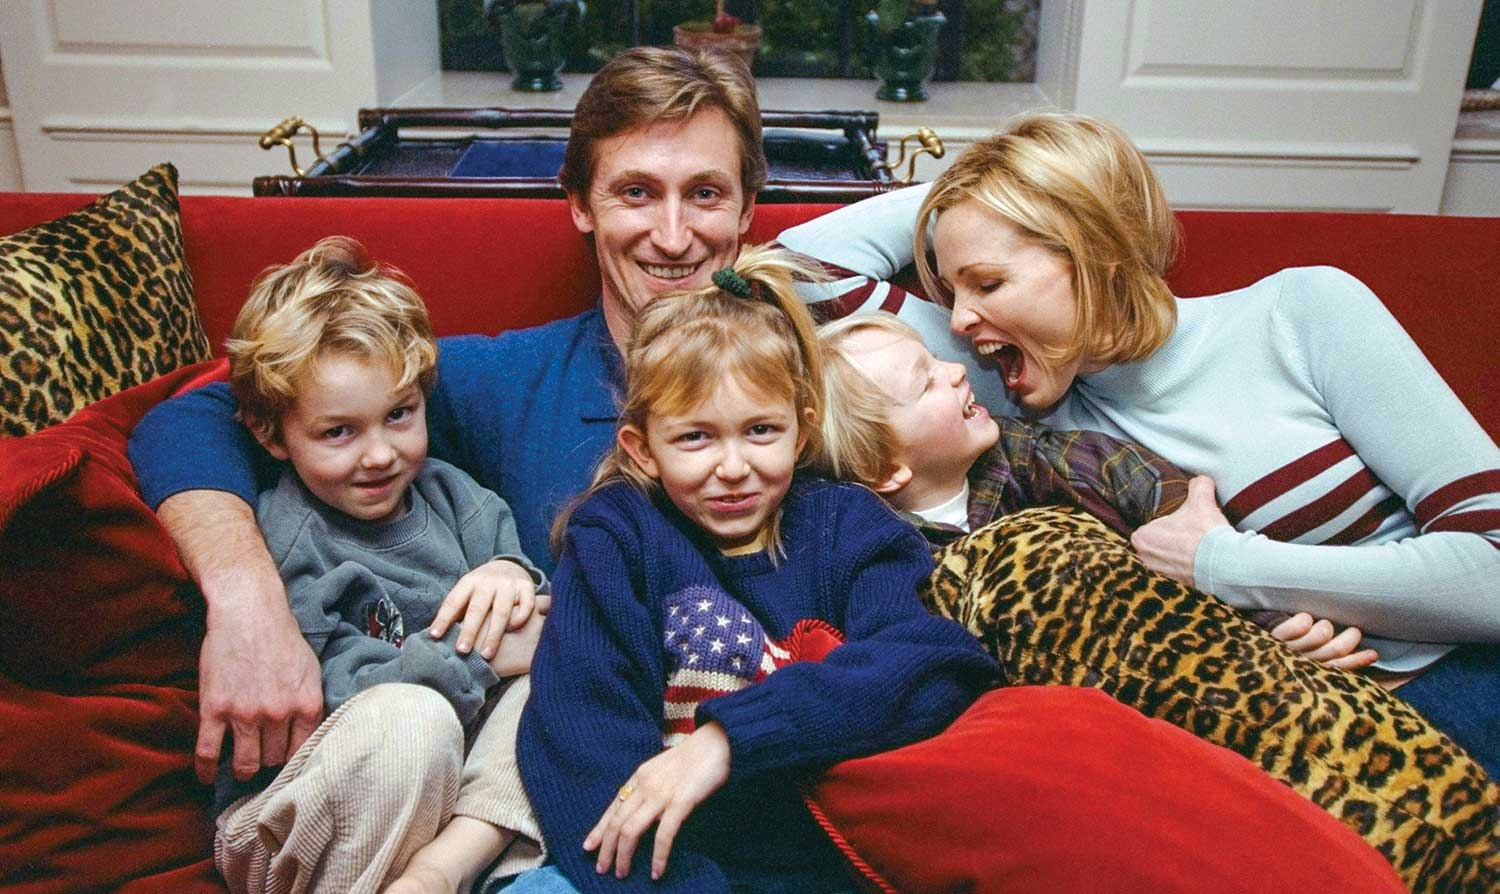 Wayne Gretzky's family picture with his three kids and wife Janet. They picture captures all happy faces, they are having a quality family time.